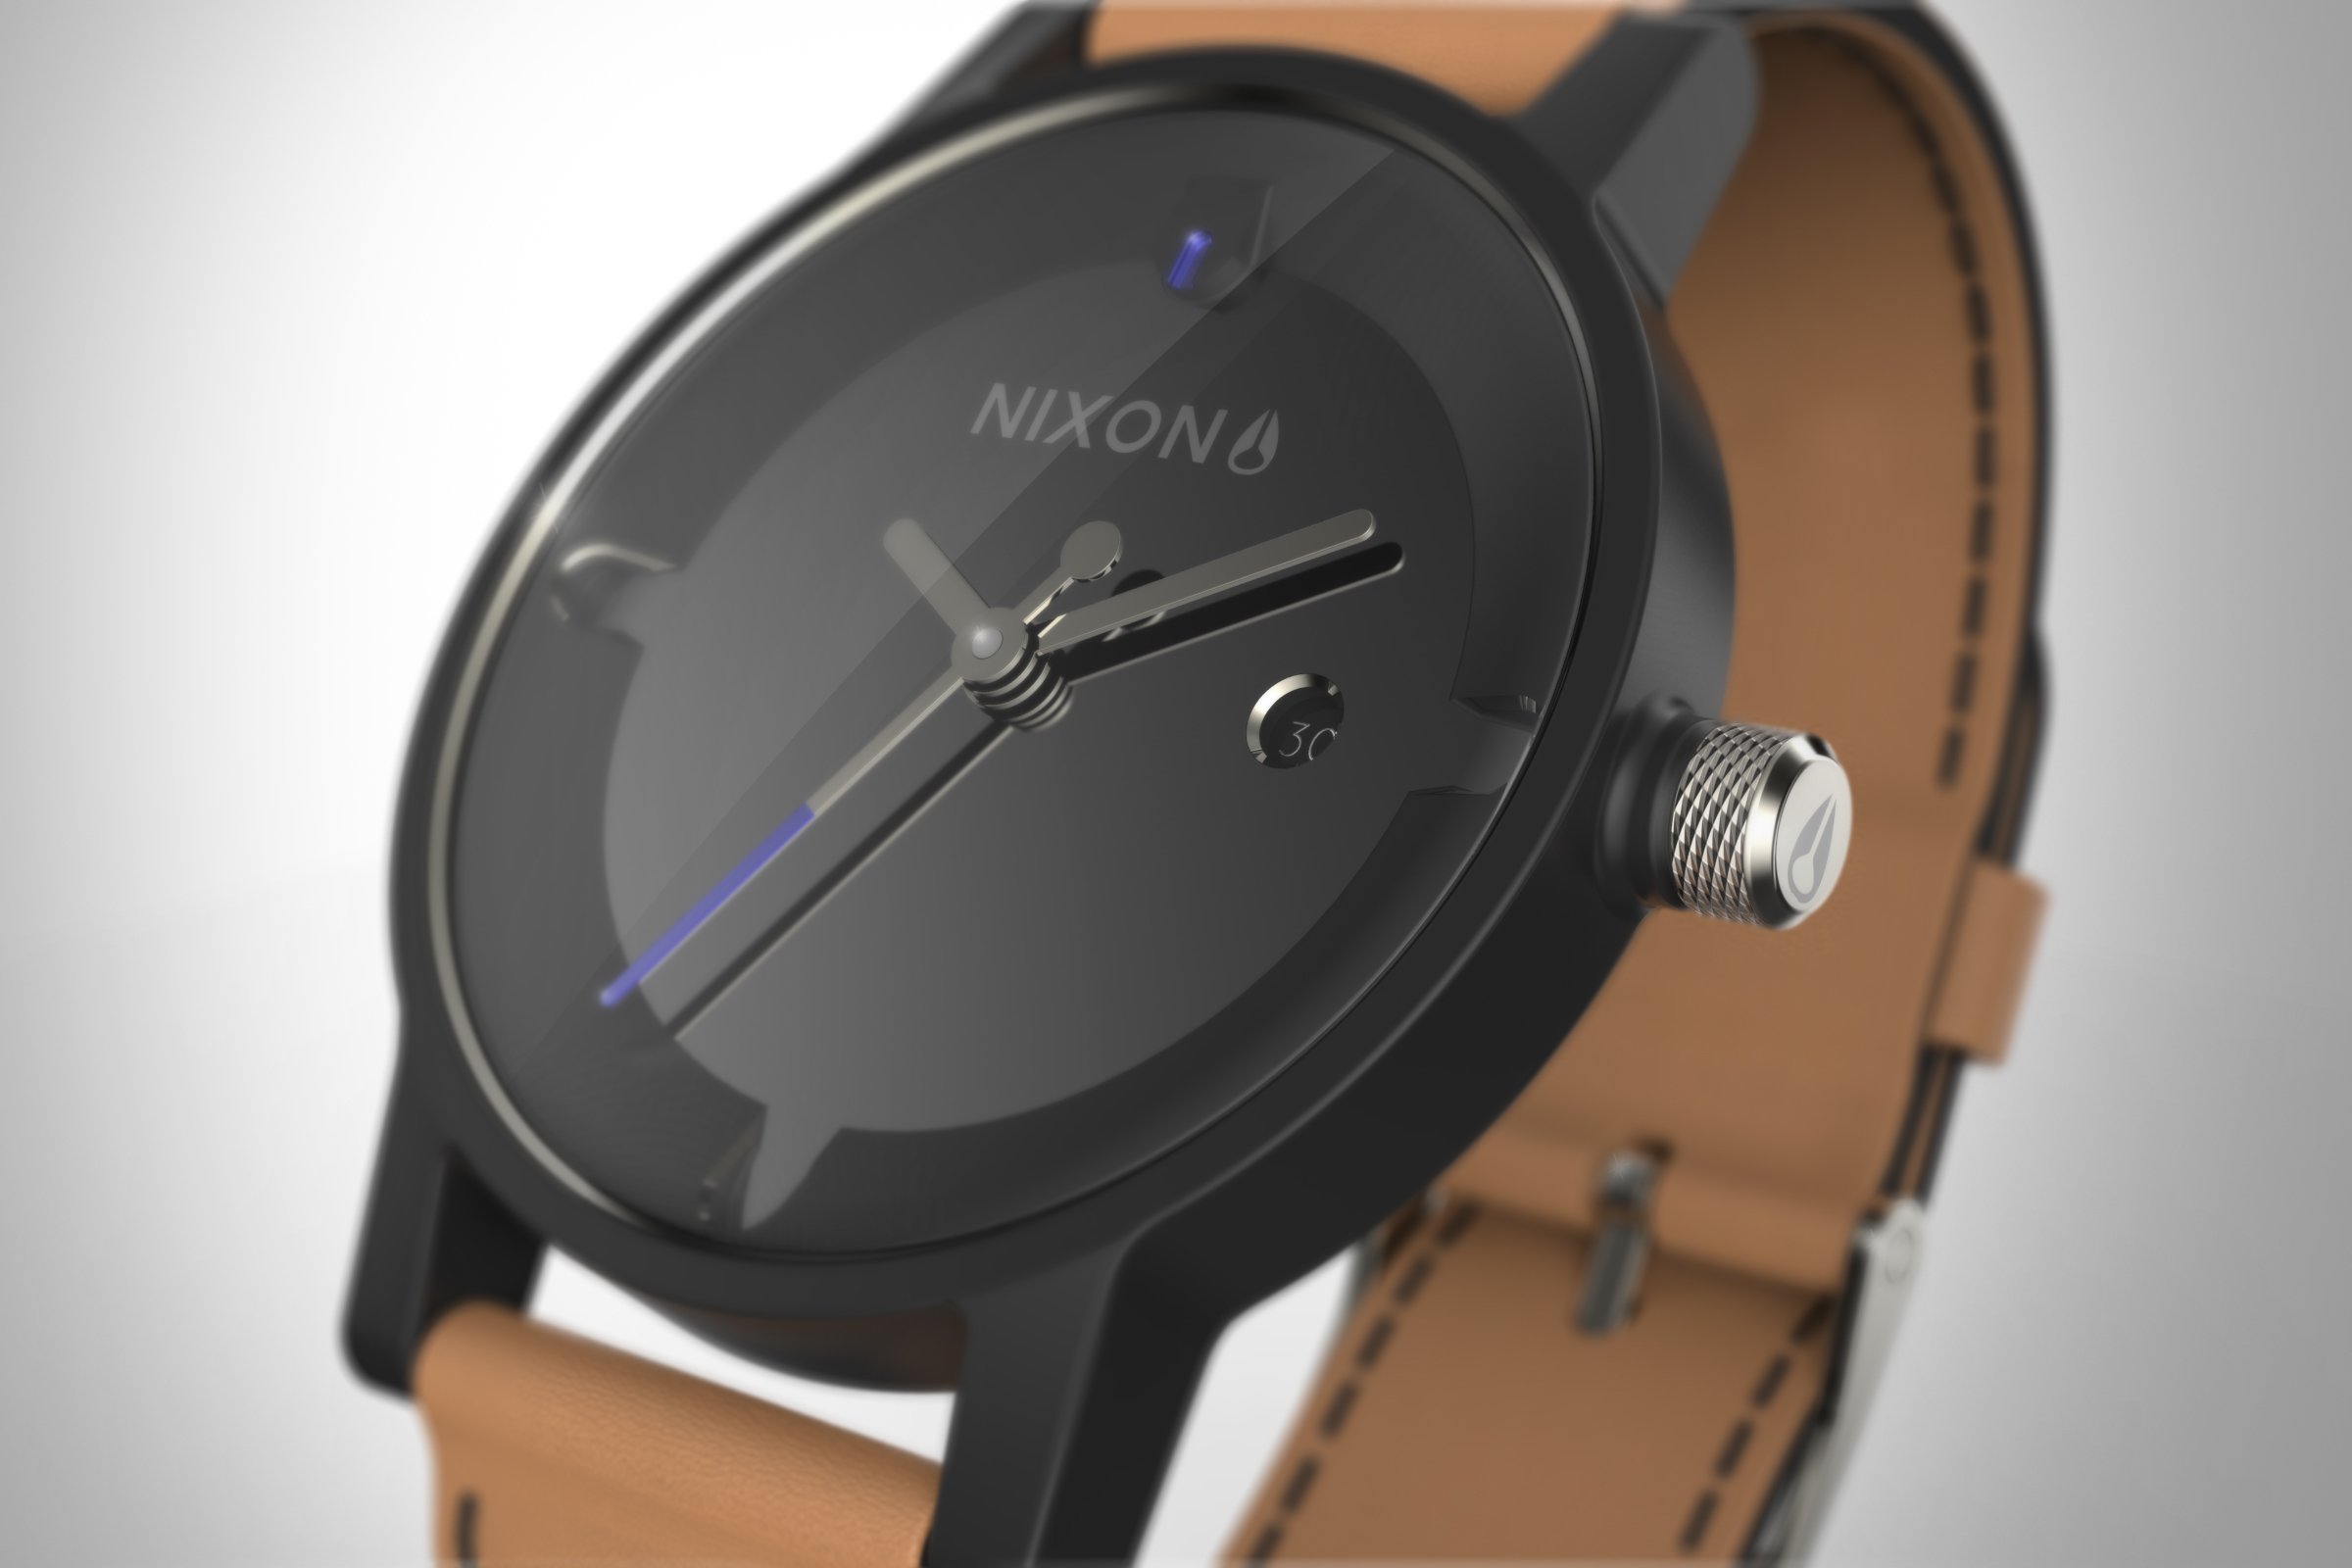 Nixon Watch Front Detail.jpg